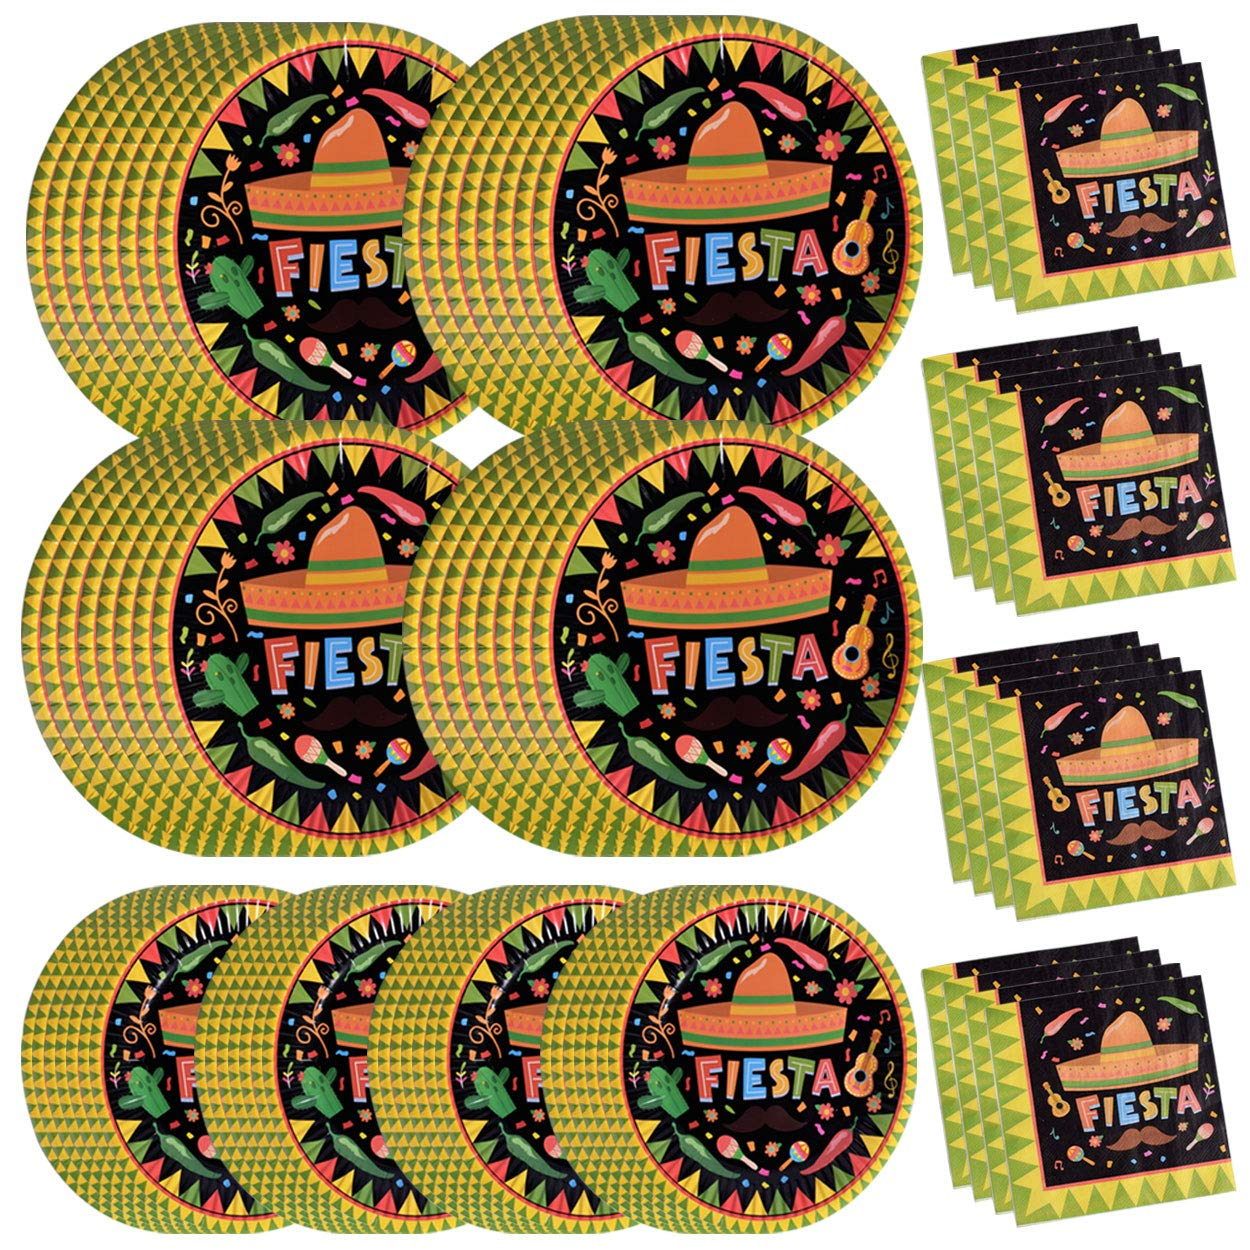 200PCS Fiesta Cinco De Mayo Party Supplies Paper Plates and Napkins Bulk 9 inch 7 inch Dessert Round Disposable Plates Green Eco Friendly Party Tableware Set (for Cinco De Mayo) by Lansian